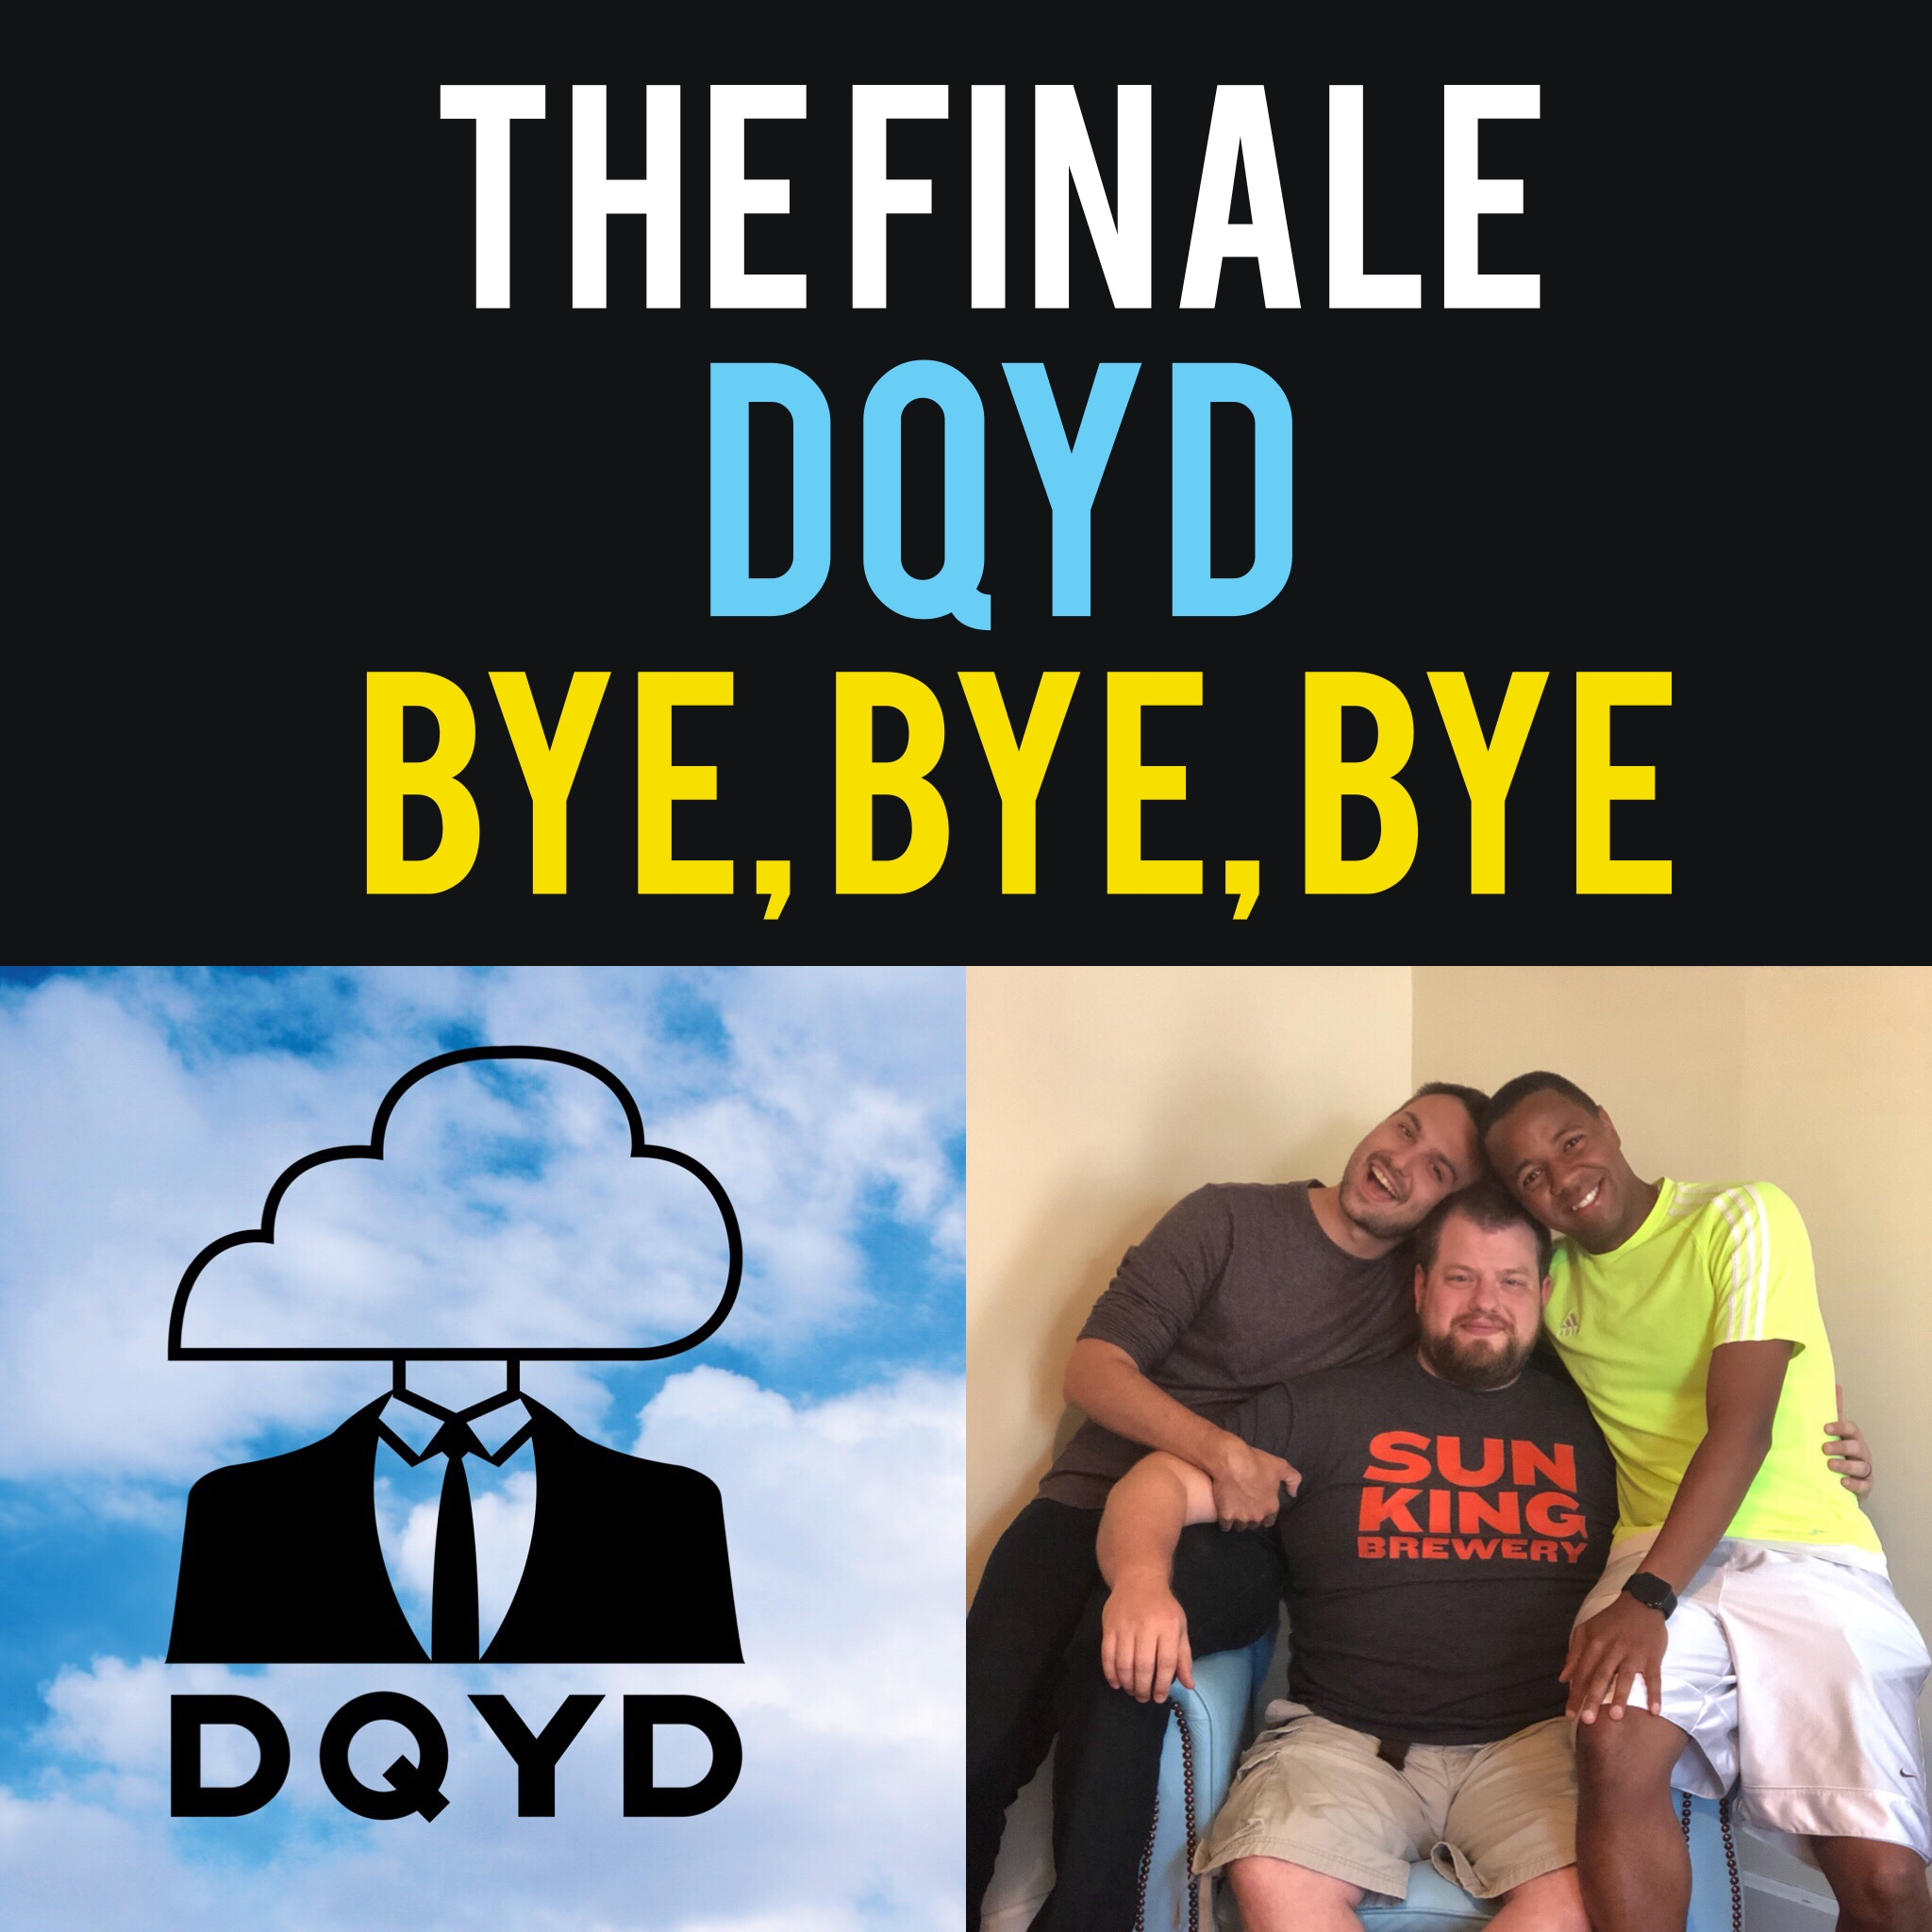 The finale is here! We can't thank you enough for supporting us on this journey. It was an absolute pleasure to meet so many wonderful people along the way. At some point we hope you found at least of an ounce of the inspiration that was given to us. We love you. Never stop daydreaming.